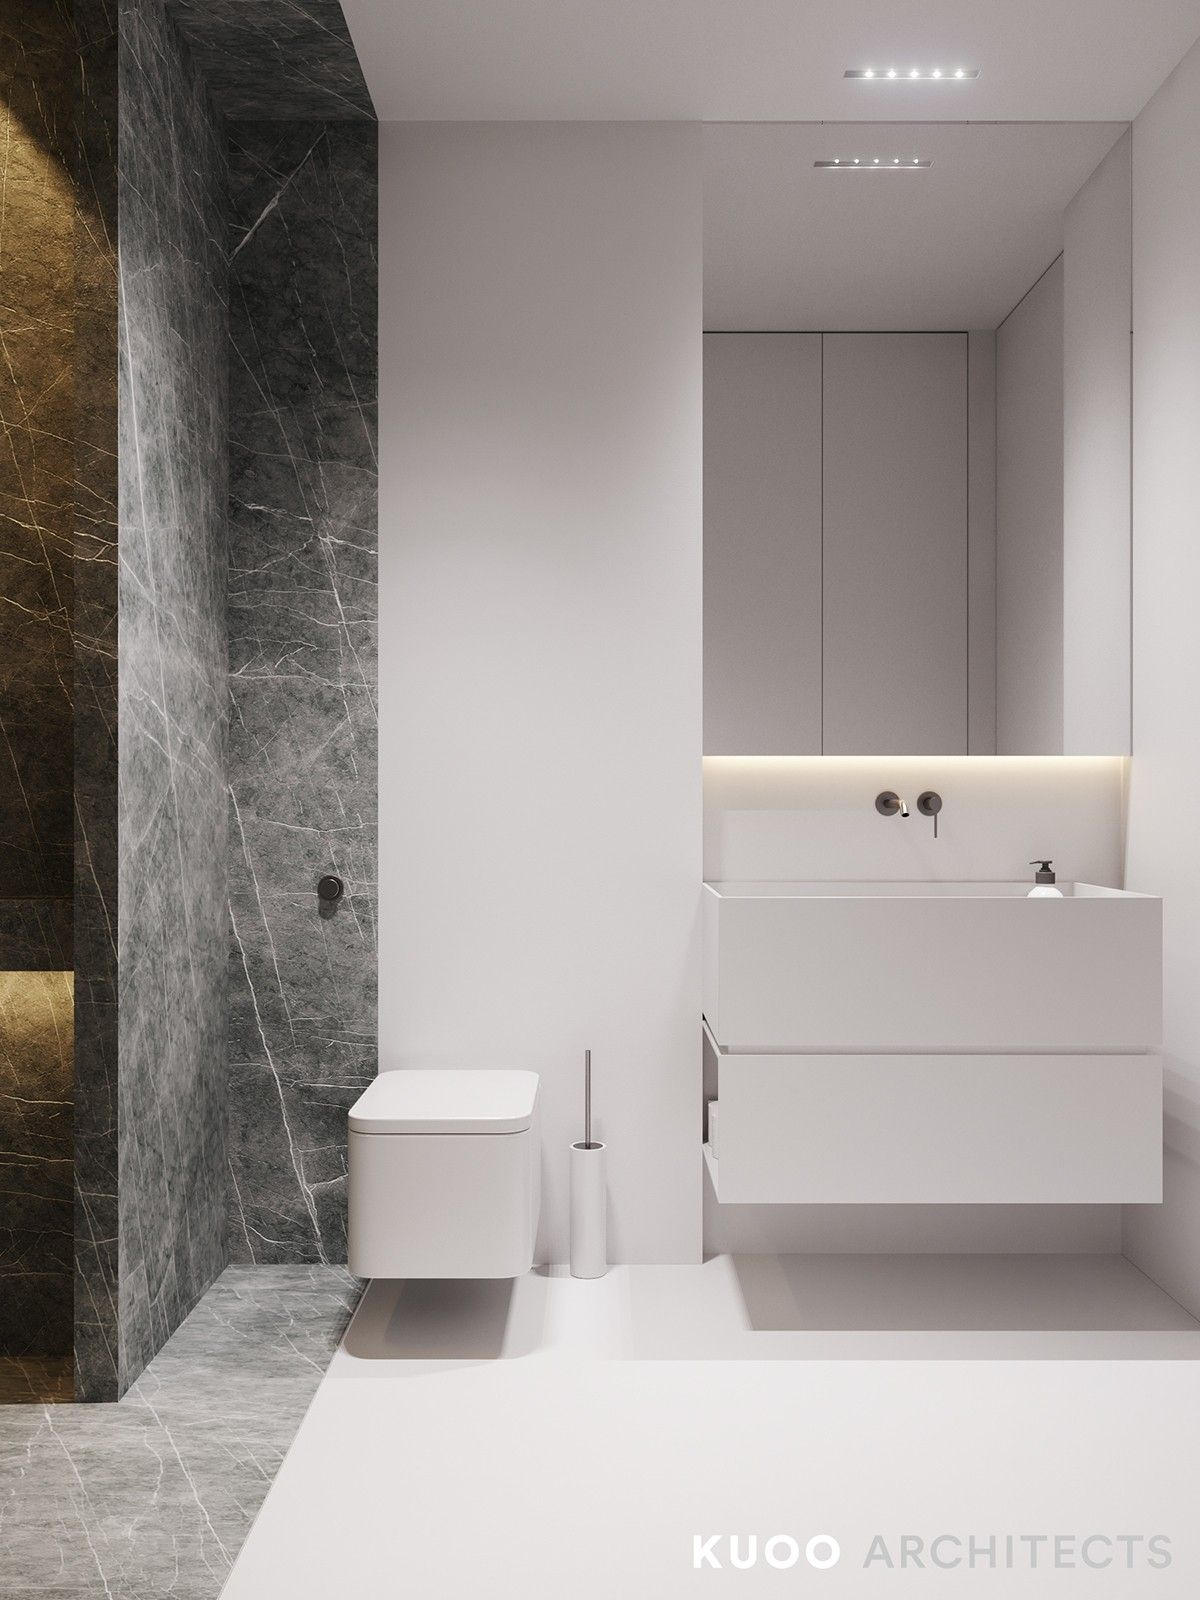 COCOON bathroom design inspiration | high-end stainless steel ...